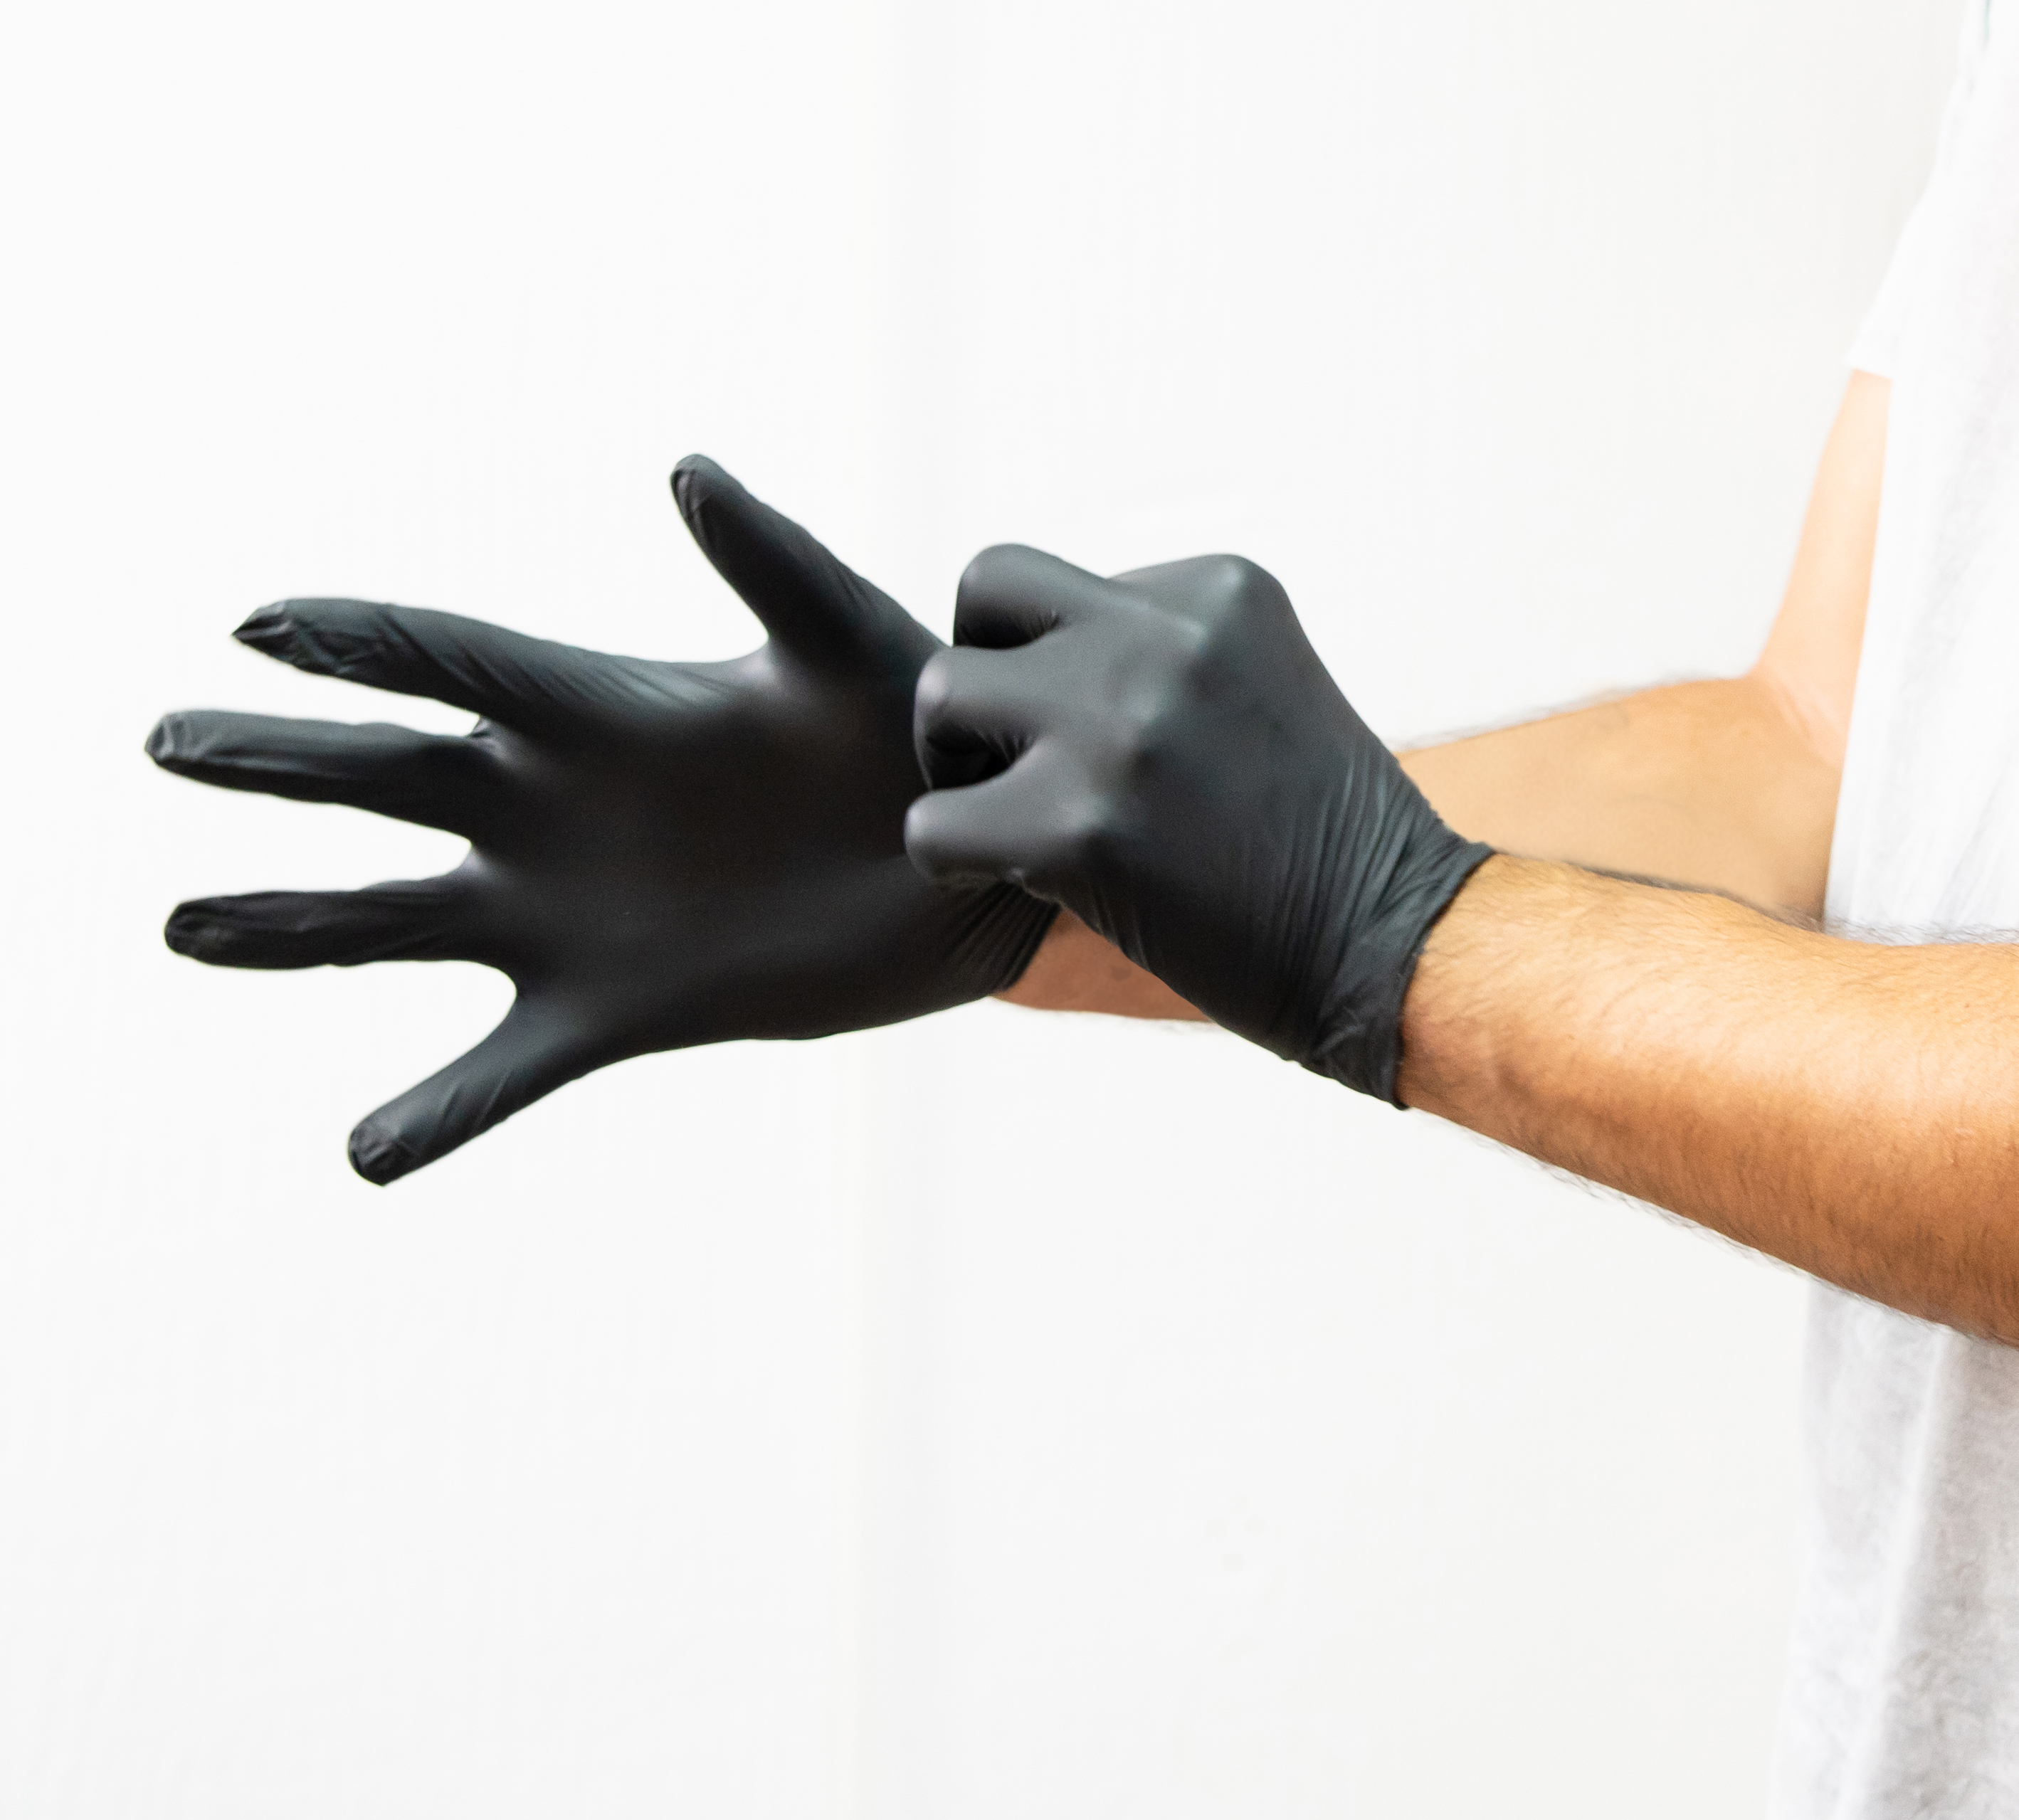 Discover Plus 5g Black Nitrile Glove-Large <span style='color:#0349fc;'>(Expected to ship between June 27 and July 1)</span>